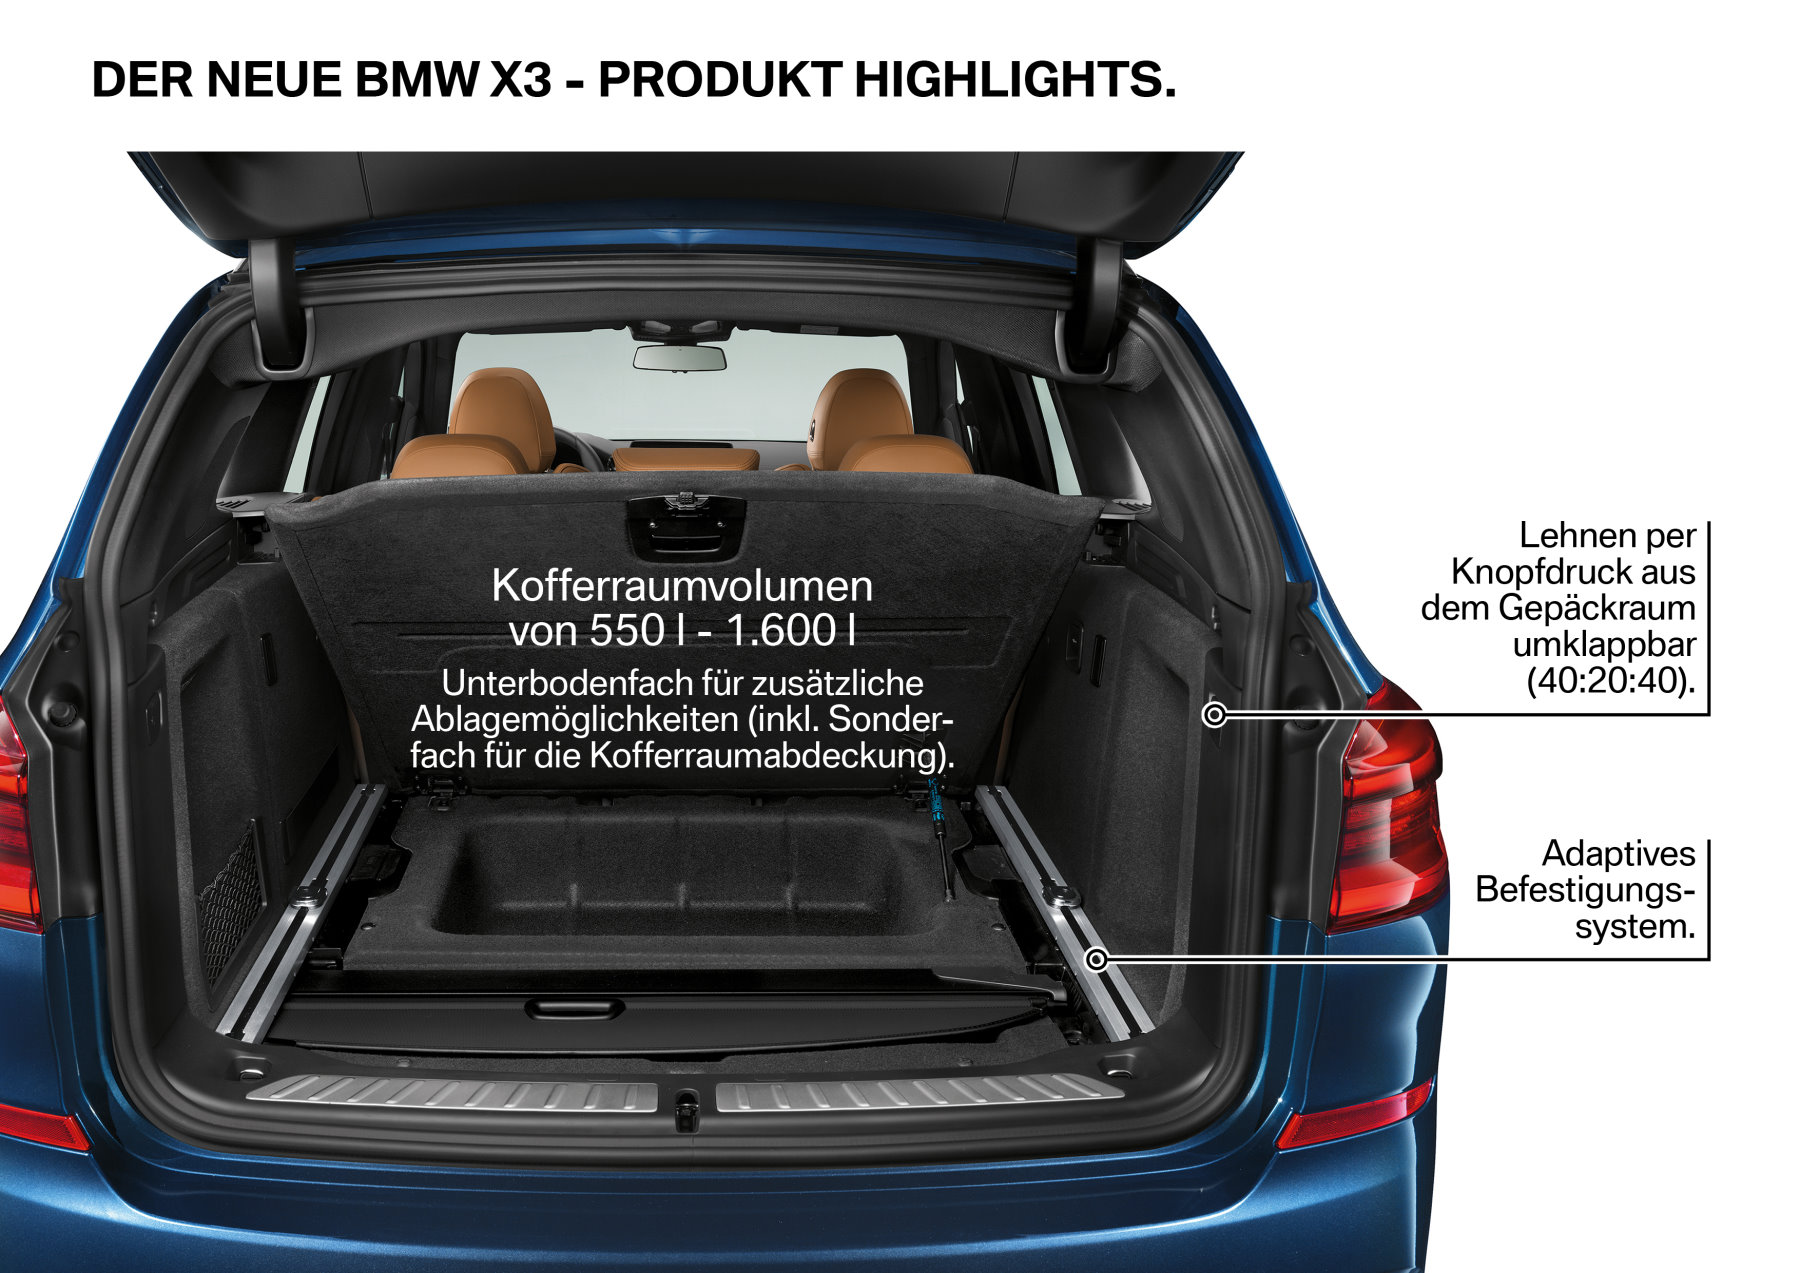 bmw x3 mehr sport wagen. Black Bedroom Furniture Sets. Home Design Ideas